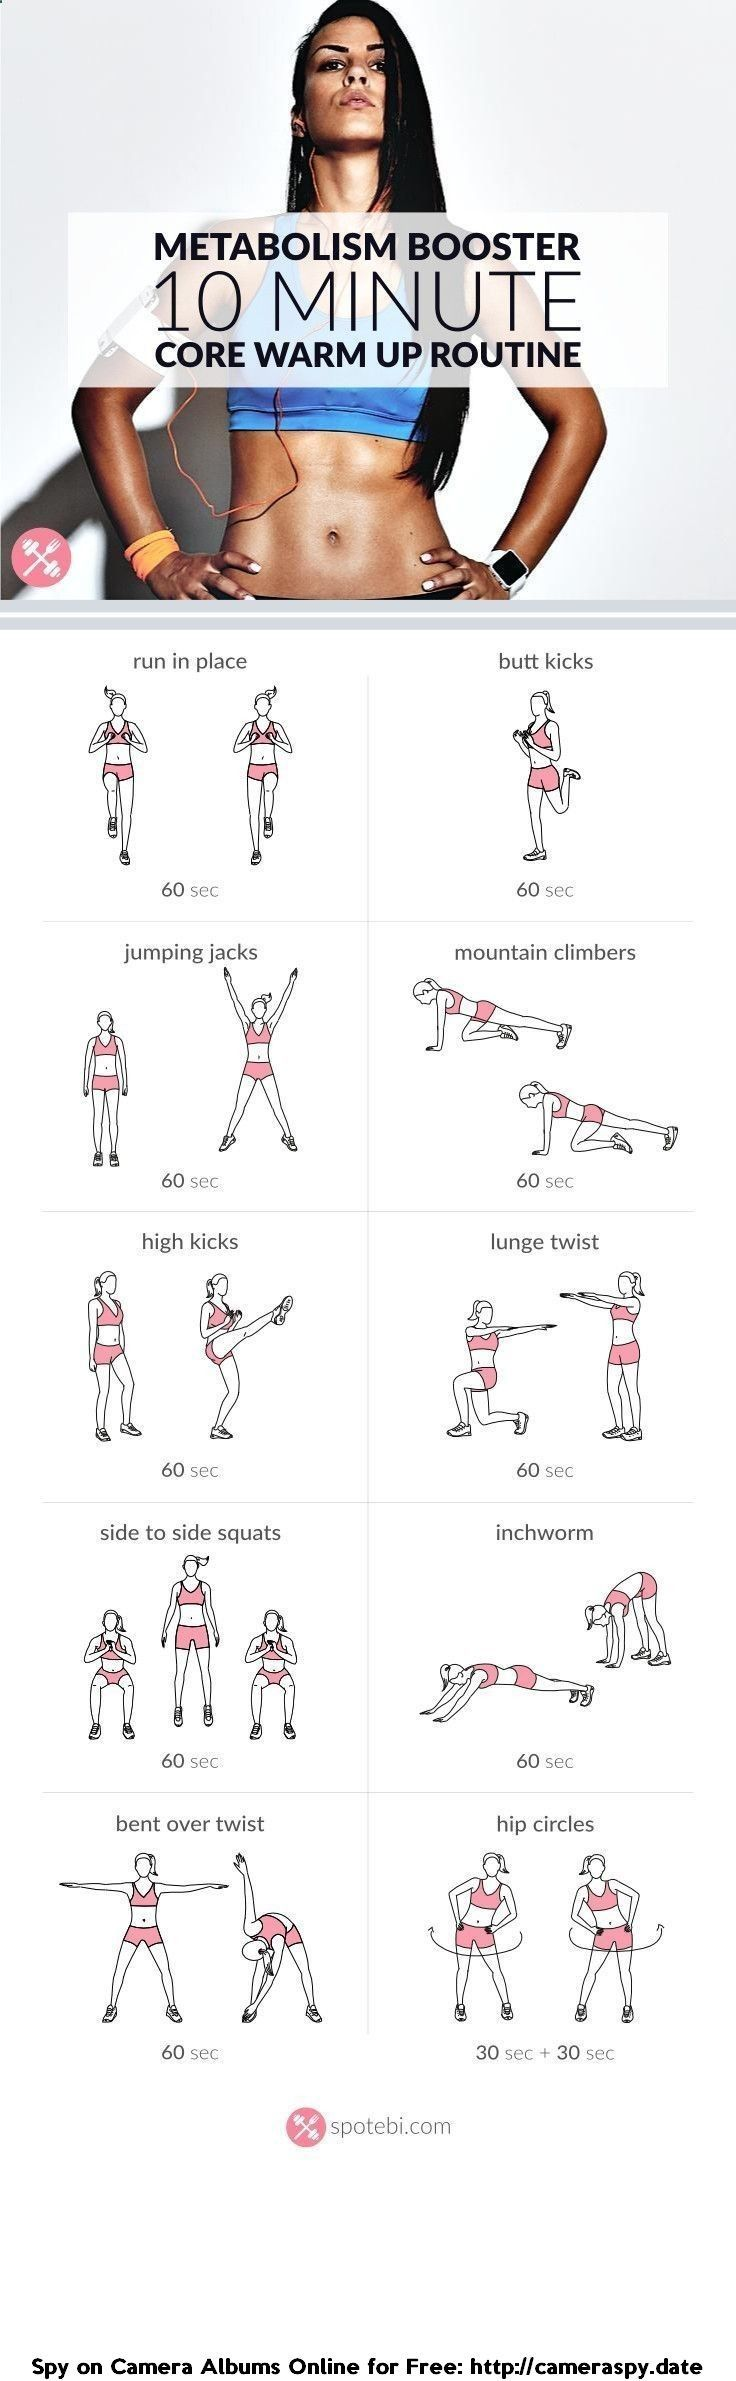 See more here ► www.youtube.com/... Tags: easy ways to lose weight fast without exercising, how to lose weight without exercise, how can you lose weight without exercising - Warm up your abs and lower back with this bodyweight at home core warm up routine